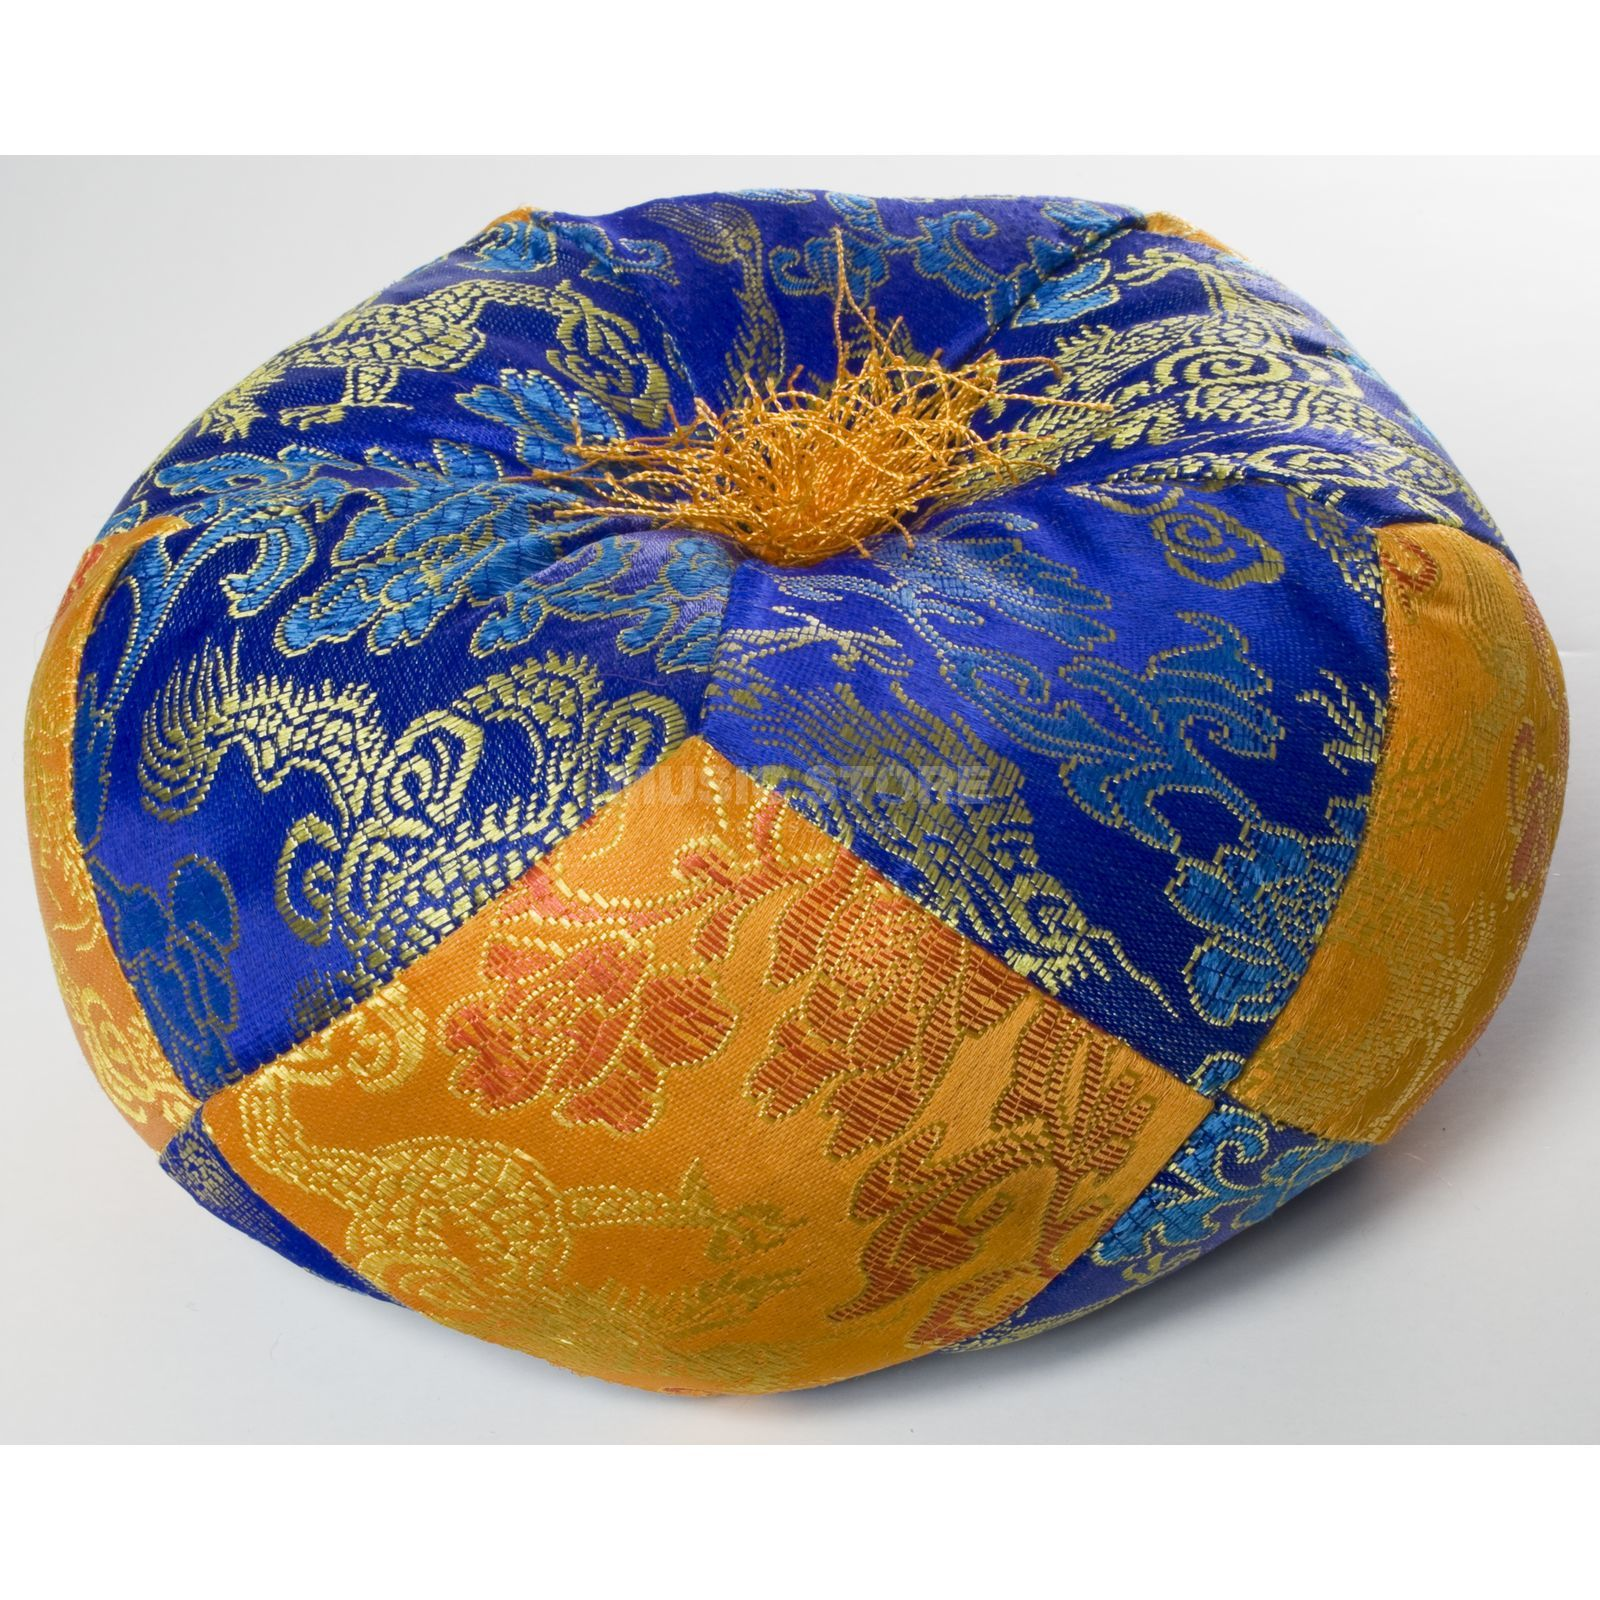 Afroton Sing Bowl Cushion AKS 933 - Medium Product Image